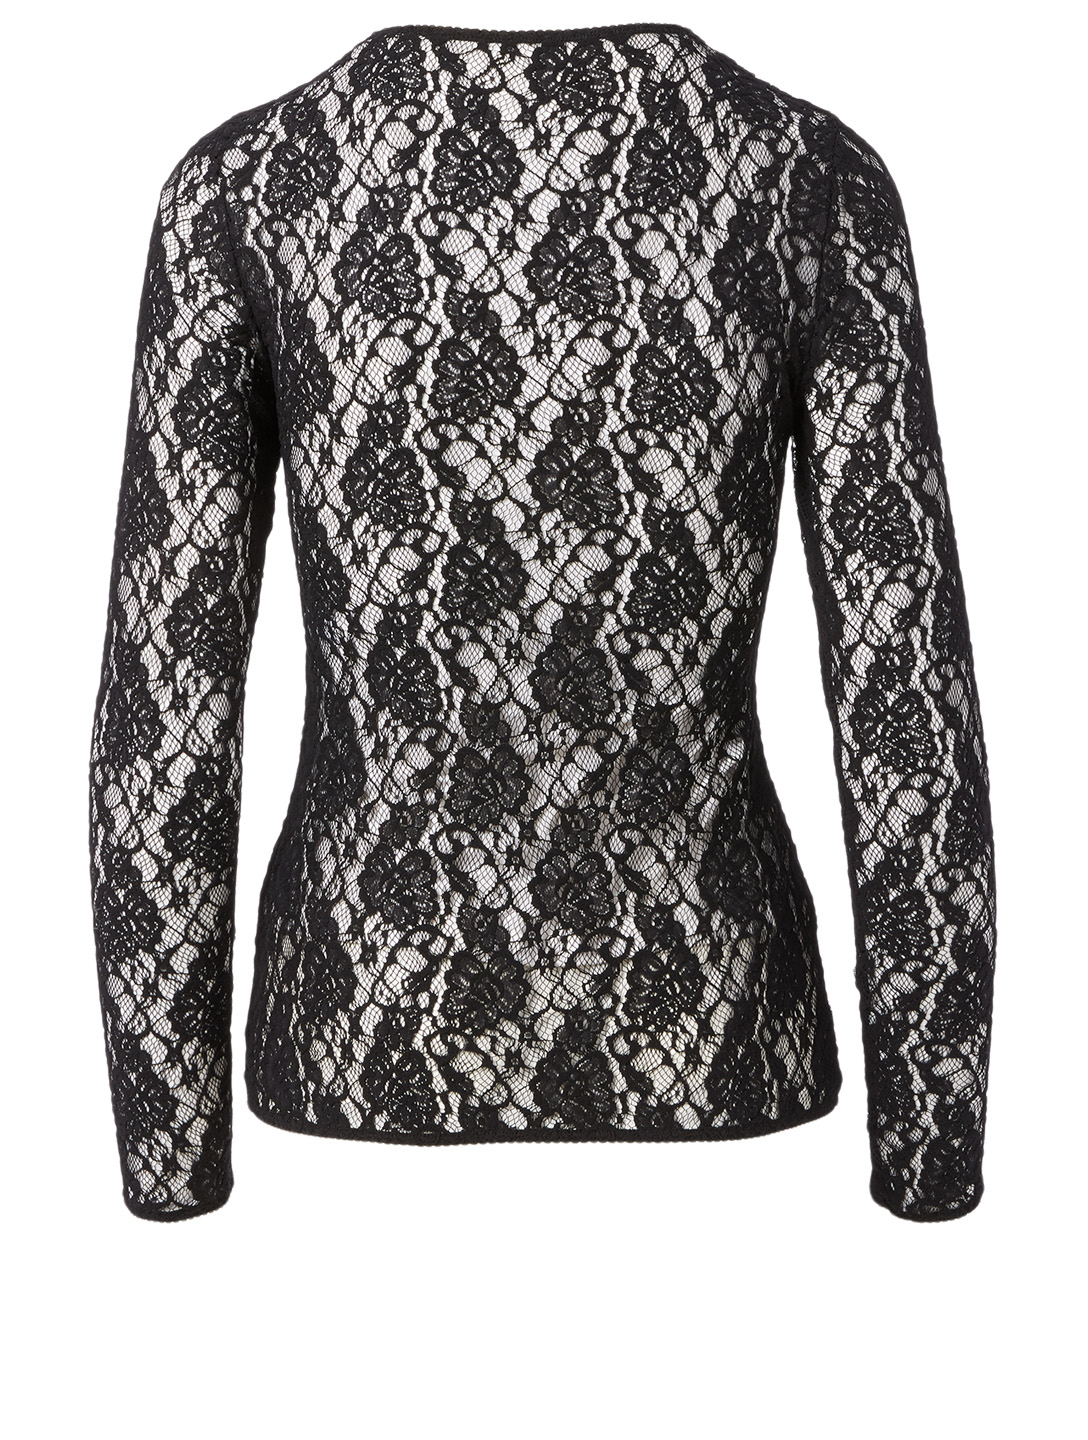 DOLCE & GABBANA Lace Long-Sleeve Top With D&G Elastic Women's Black